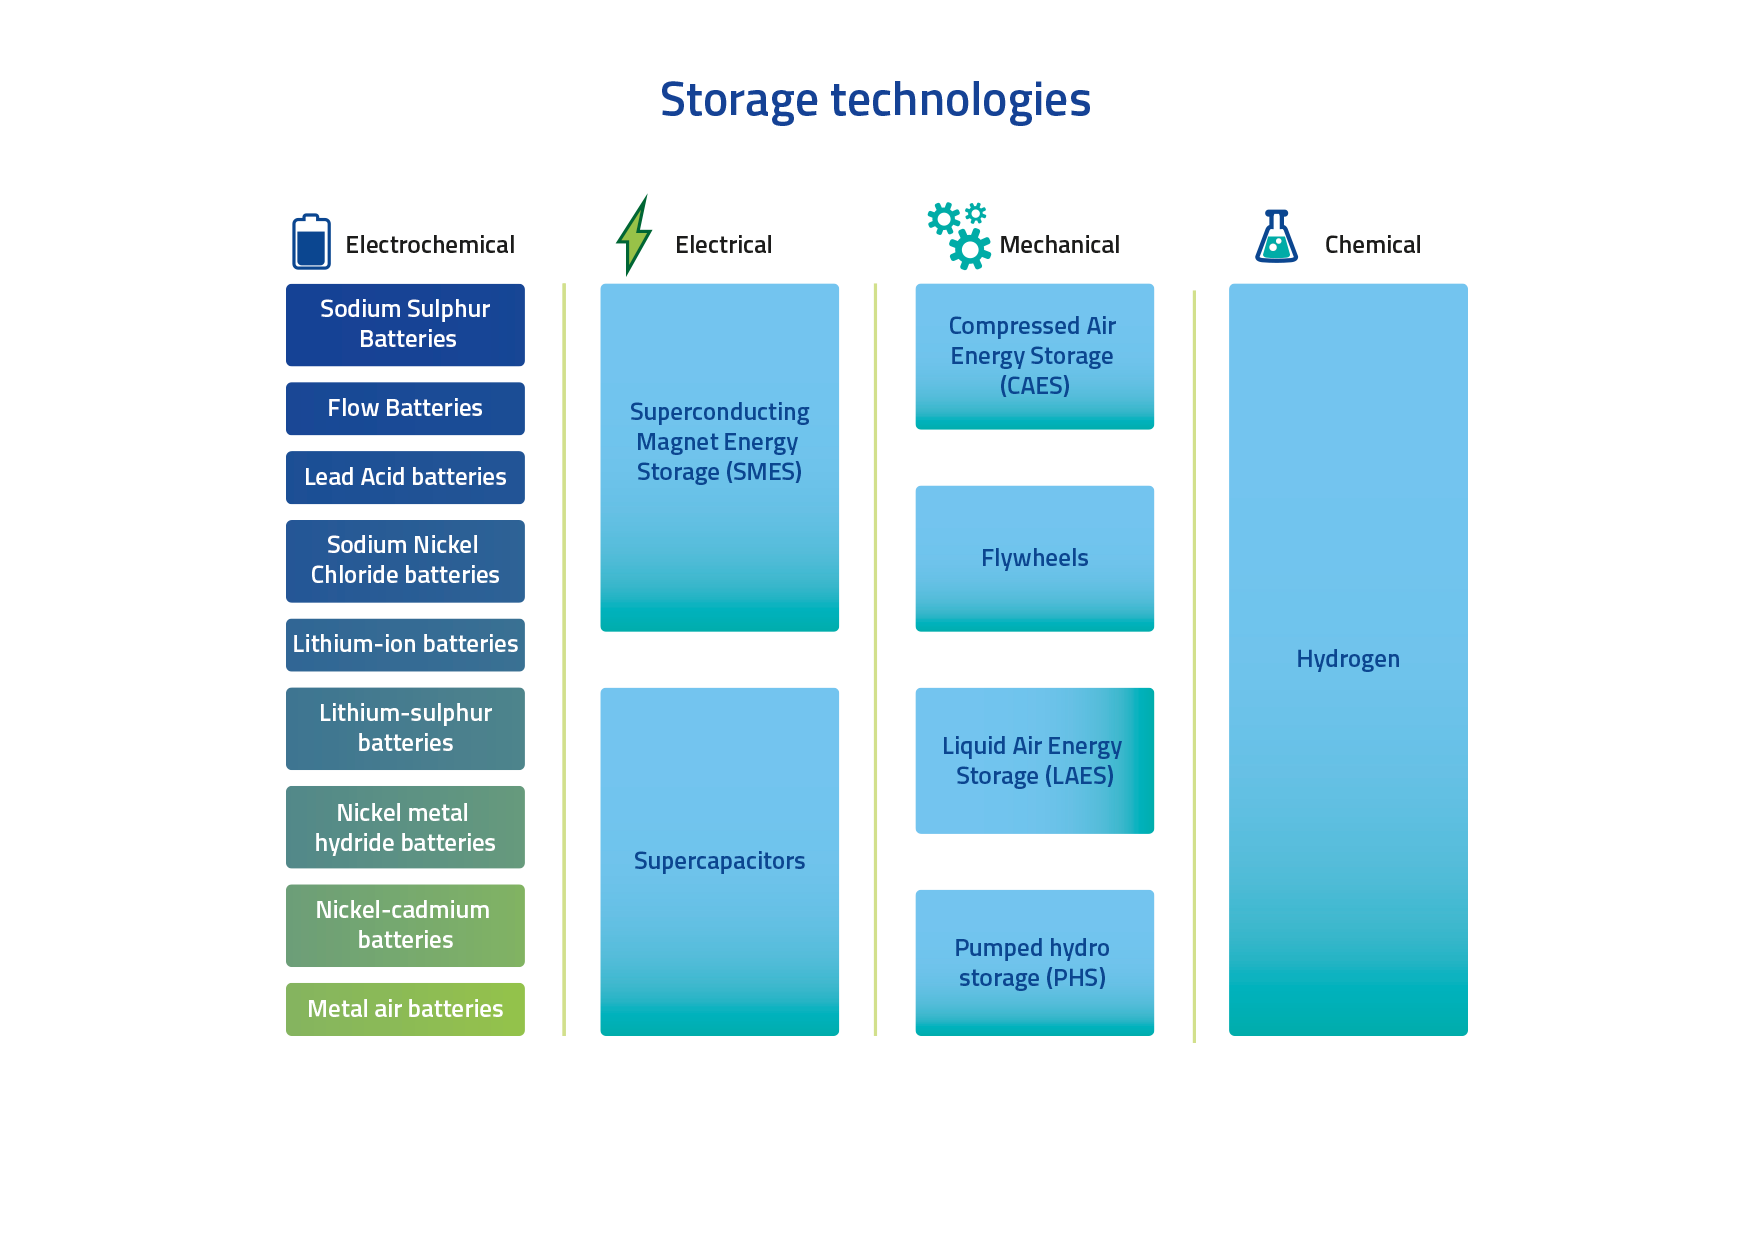 Four groups of energy storage technologies and different subgroups: Electrochemical (example subgroup: batteries), Electrical (example subgroup: supercapacitors) , Mechanical (example subgroup: compressed air) and Chemical (subgroup: hydrogen storage).